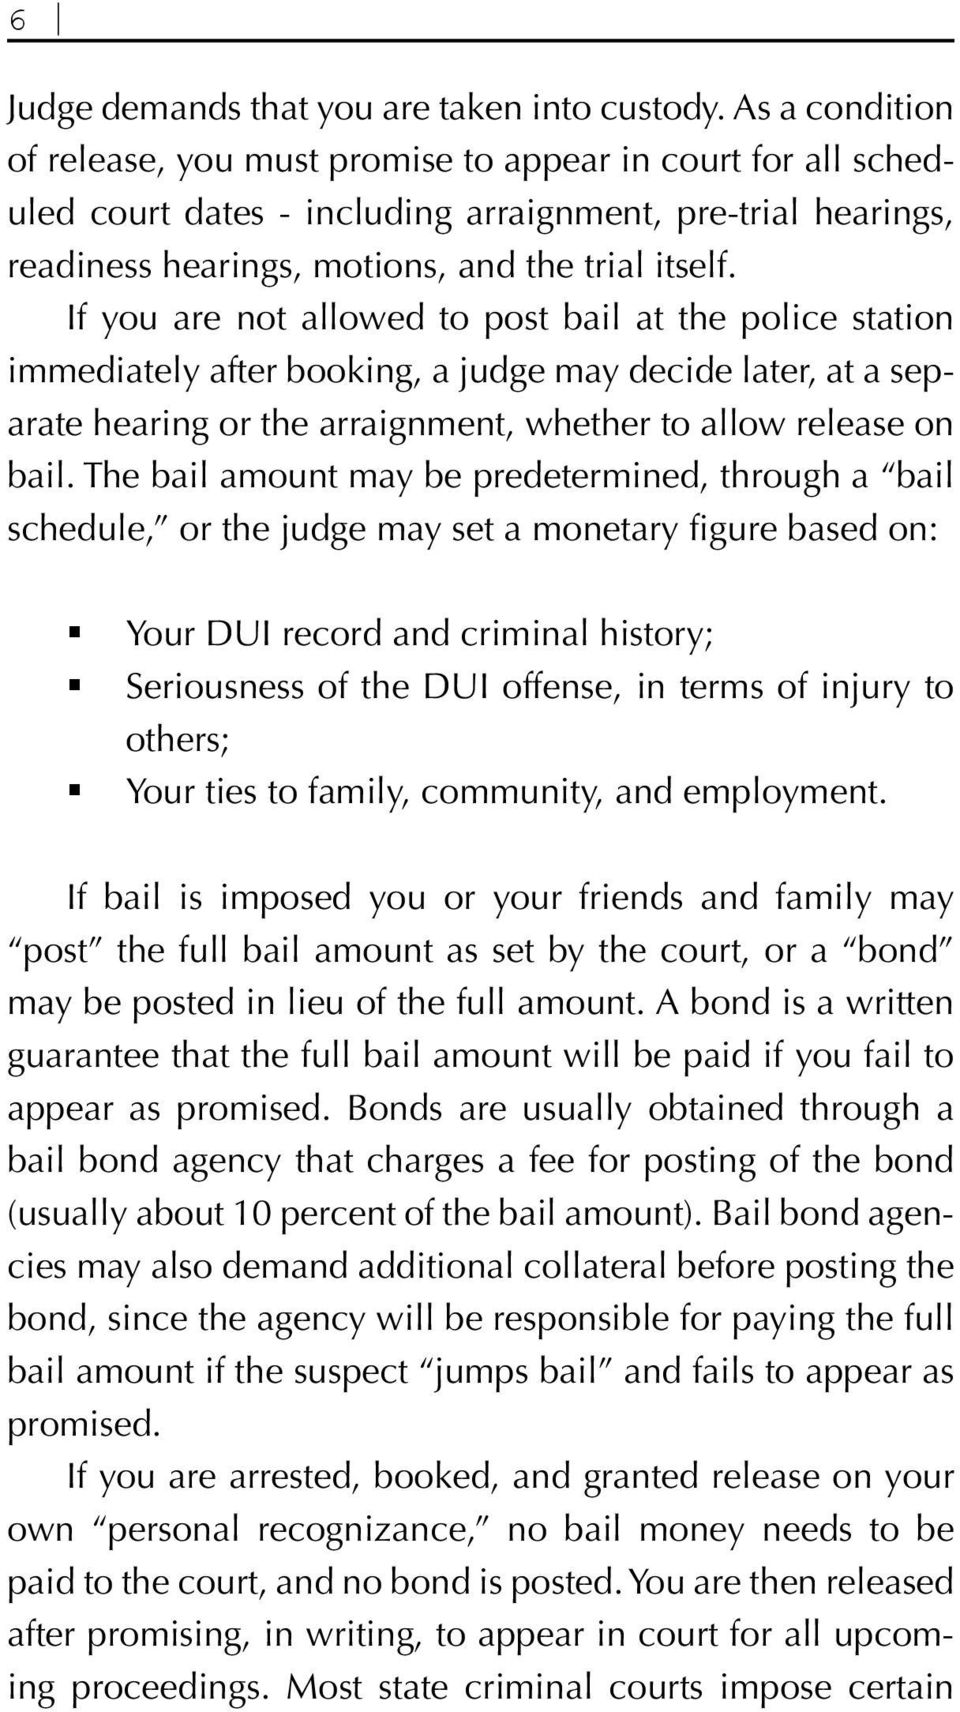 If you are not allowed to post bail at the police station immediately after booking, a judge may decide later, at a separate hearing or the arraignment, whether to allow release on bail.